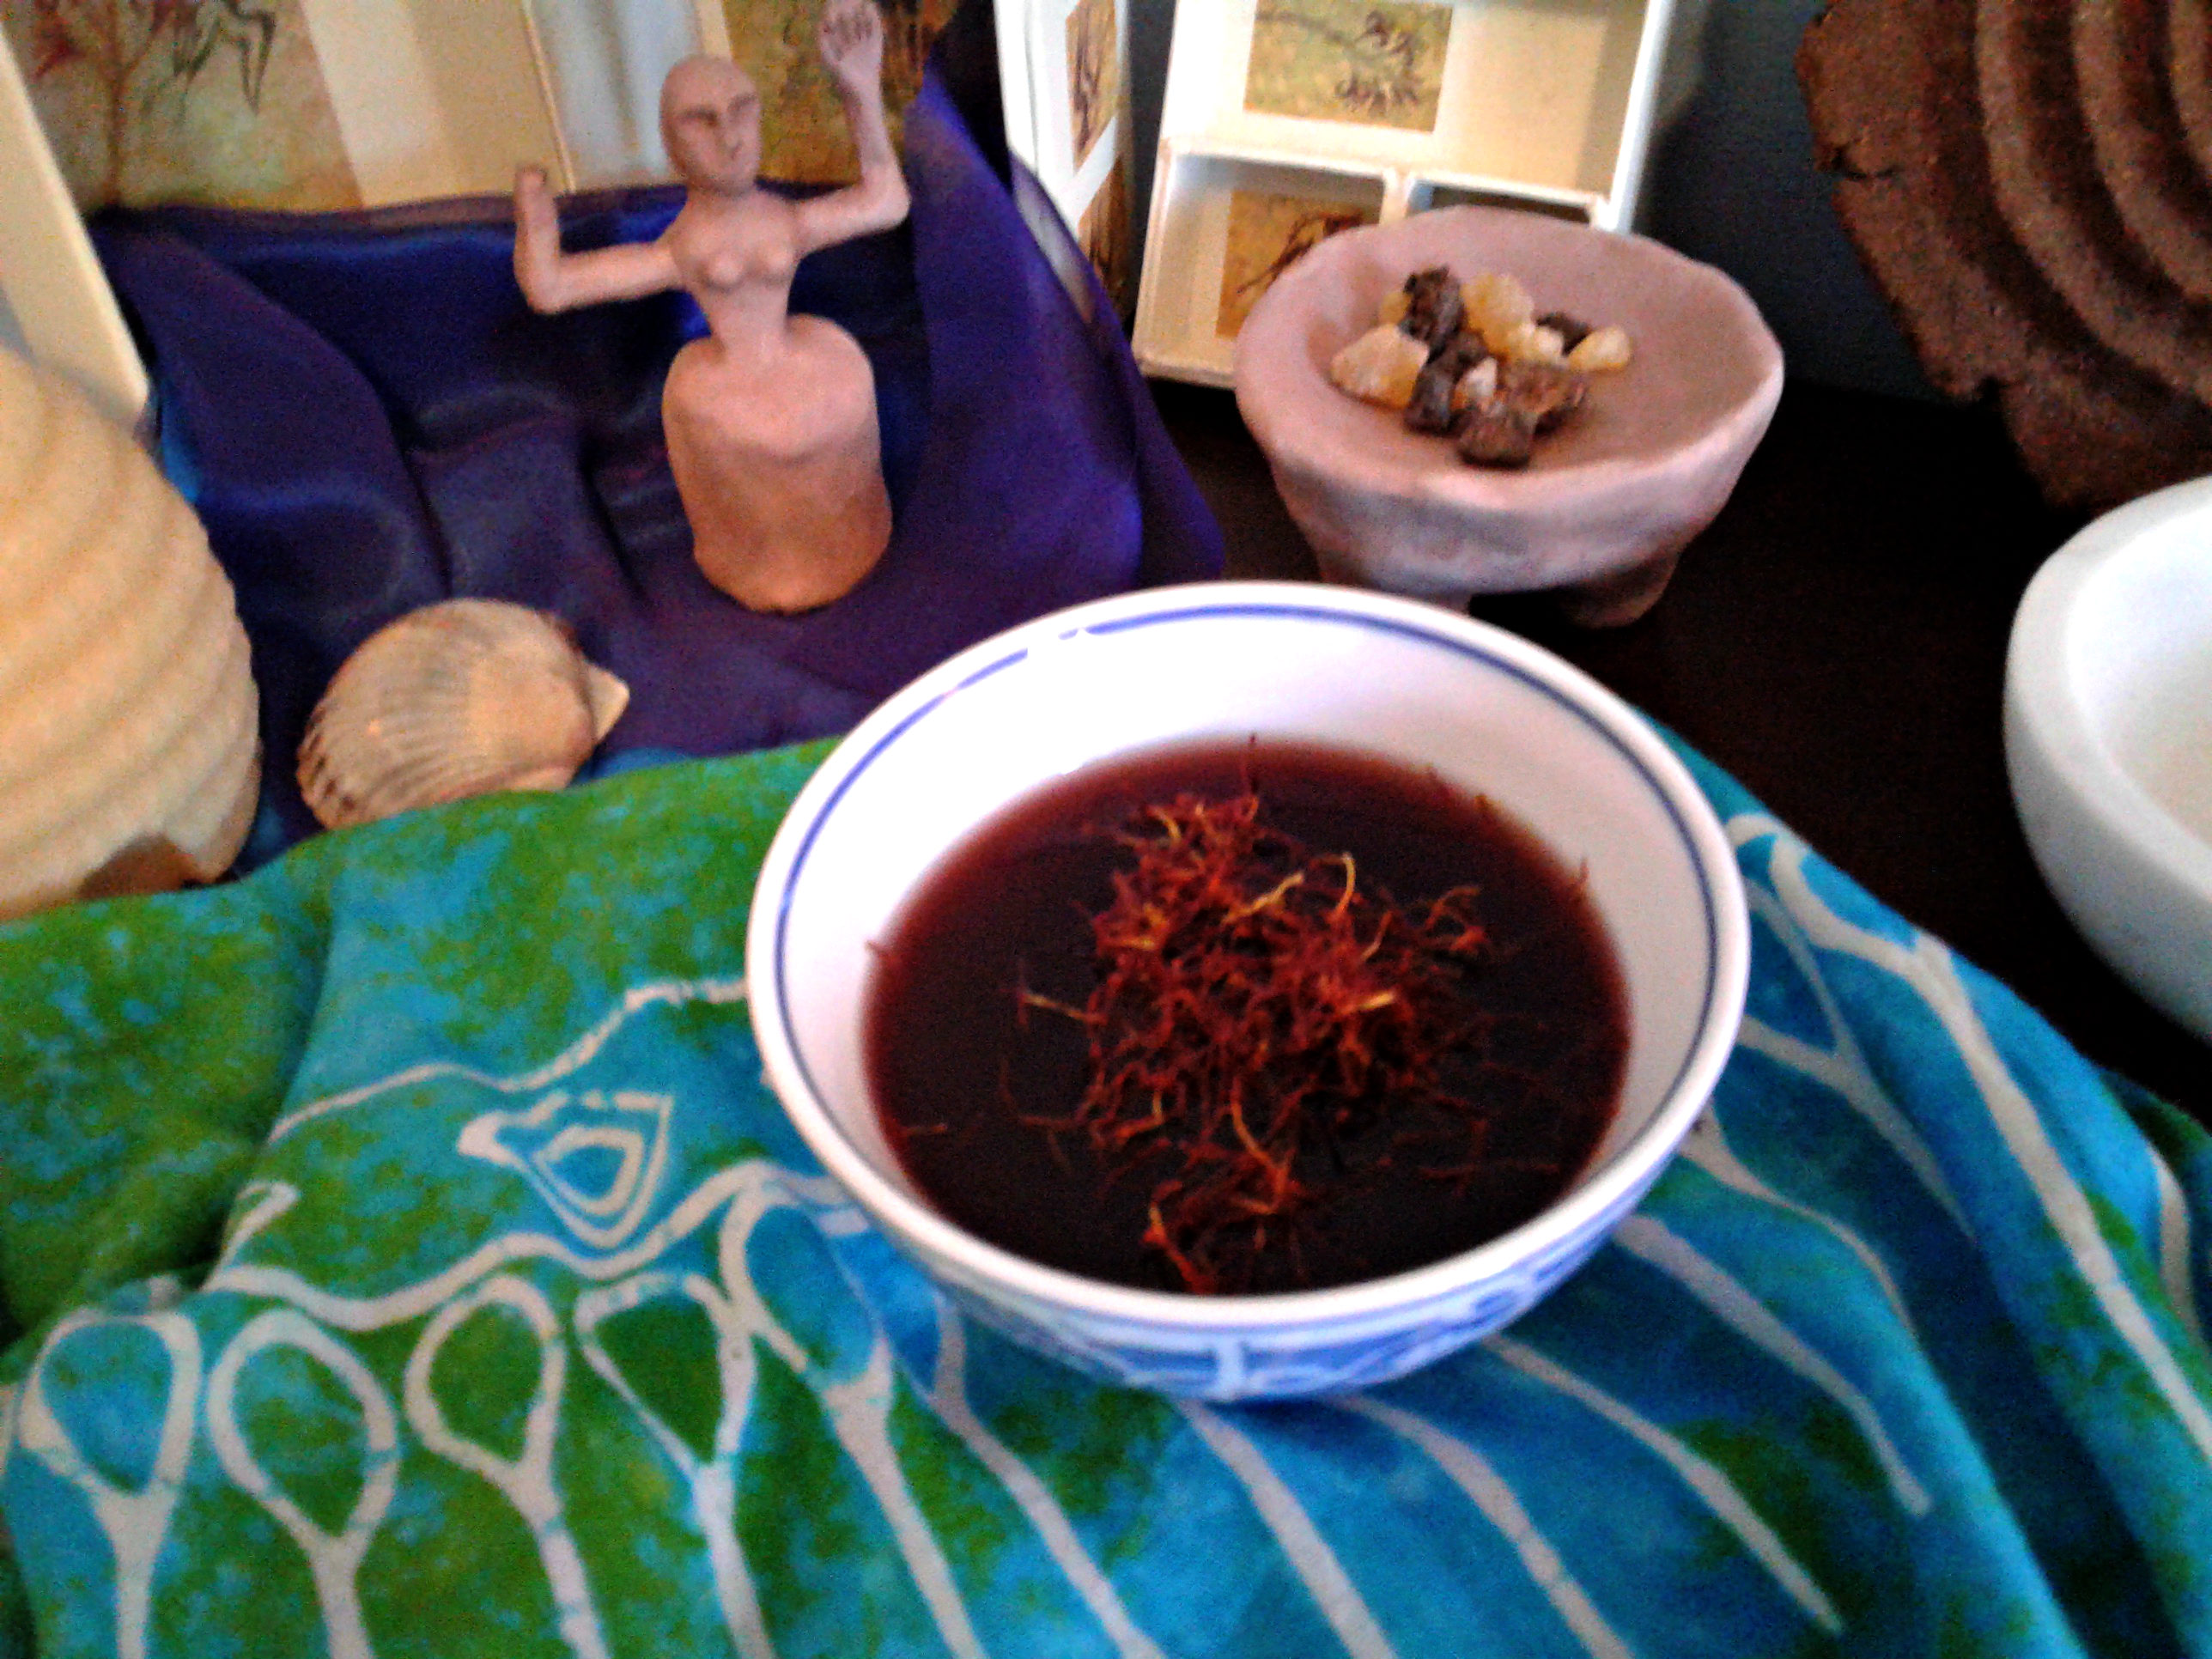 Minoan Leftovers: What should I do with those offerings